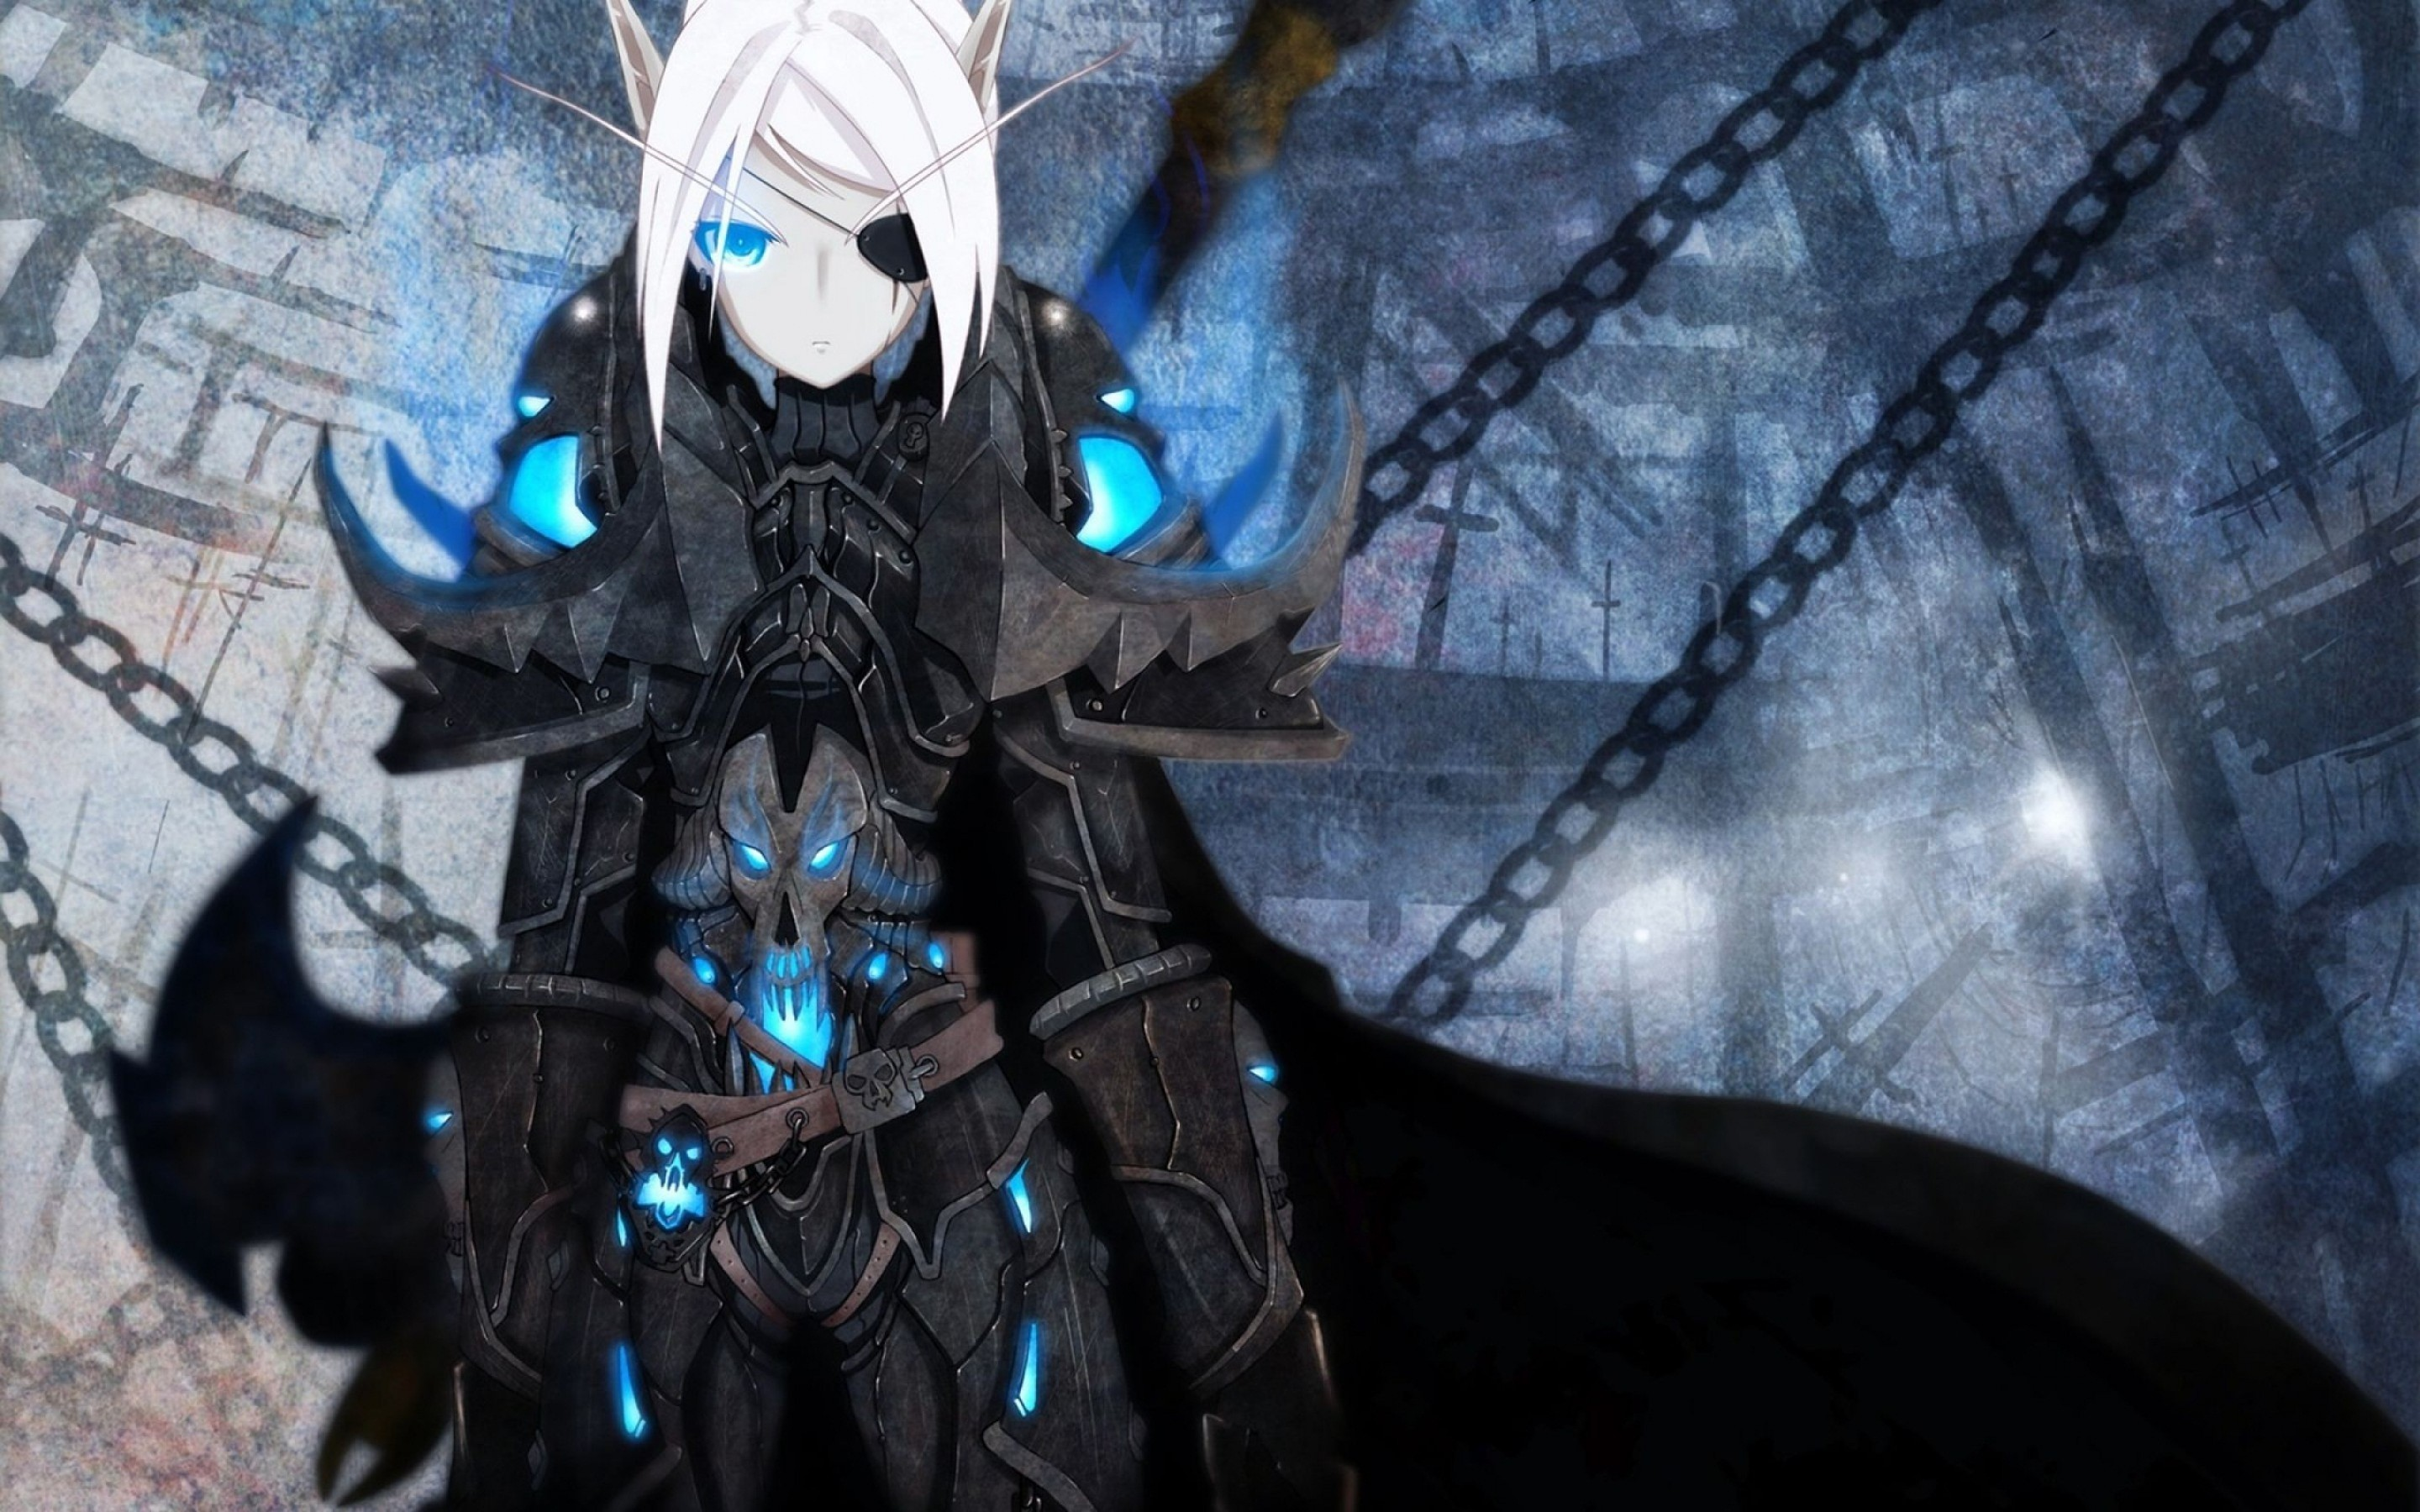 Download World Of Warcraft Death Knight Wallpaper – Wallpapers Widest |  Download Wallpaper | Pinterest | Lich king, Wallpaper and Knight